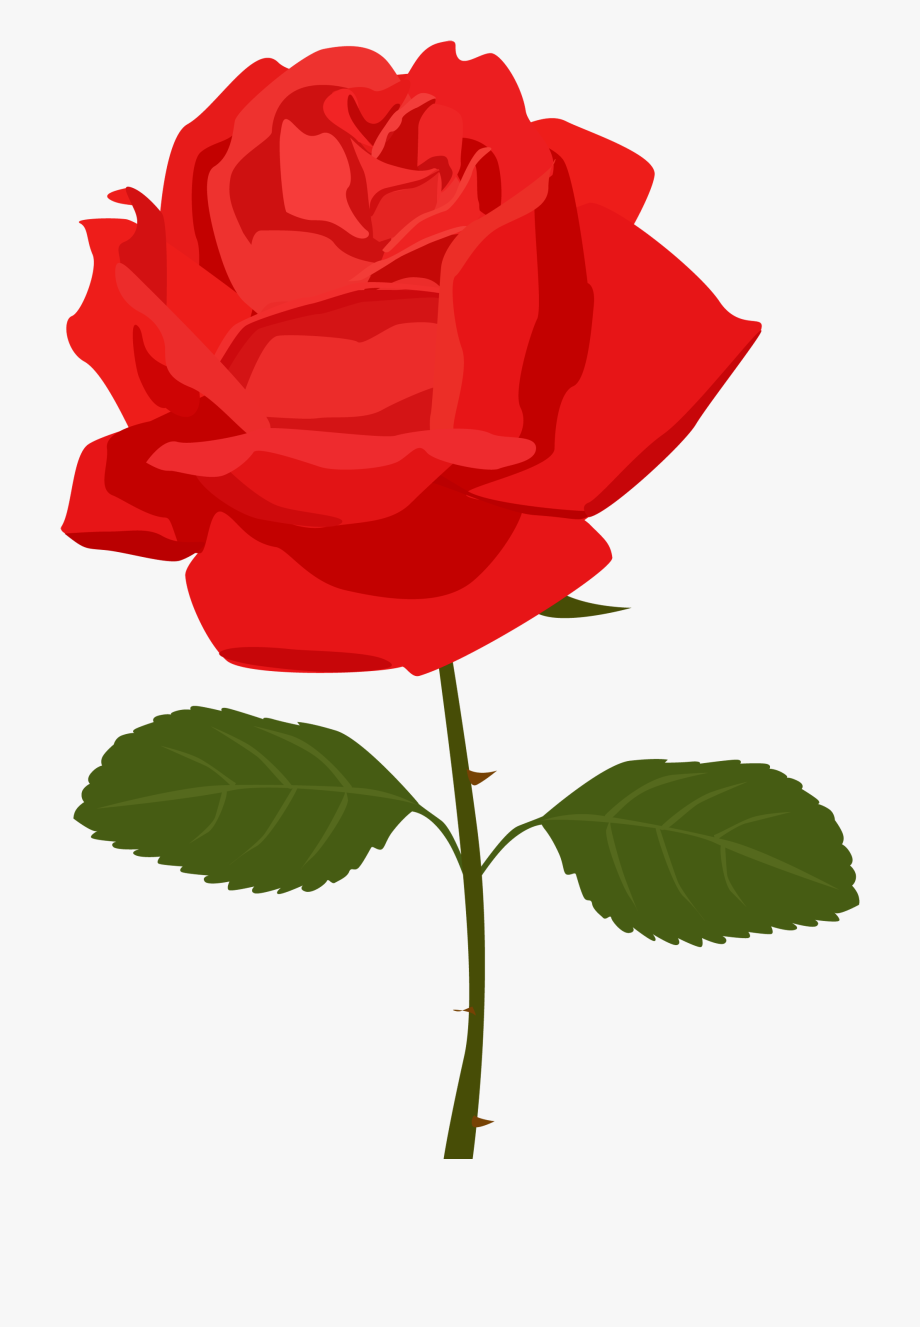 Clipart roses clear background. Dozen red re rose